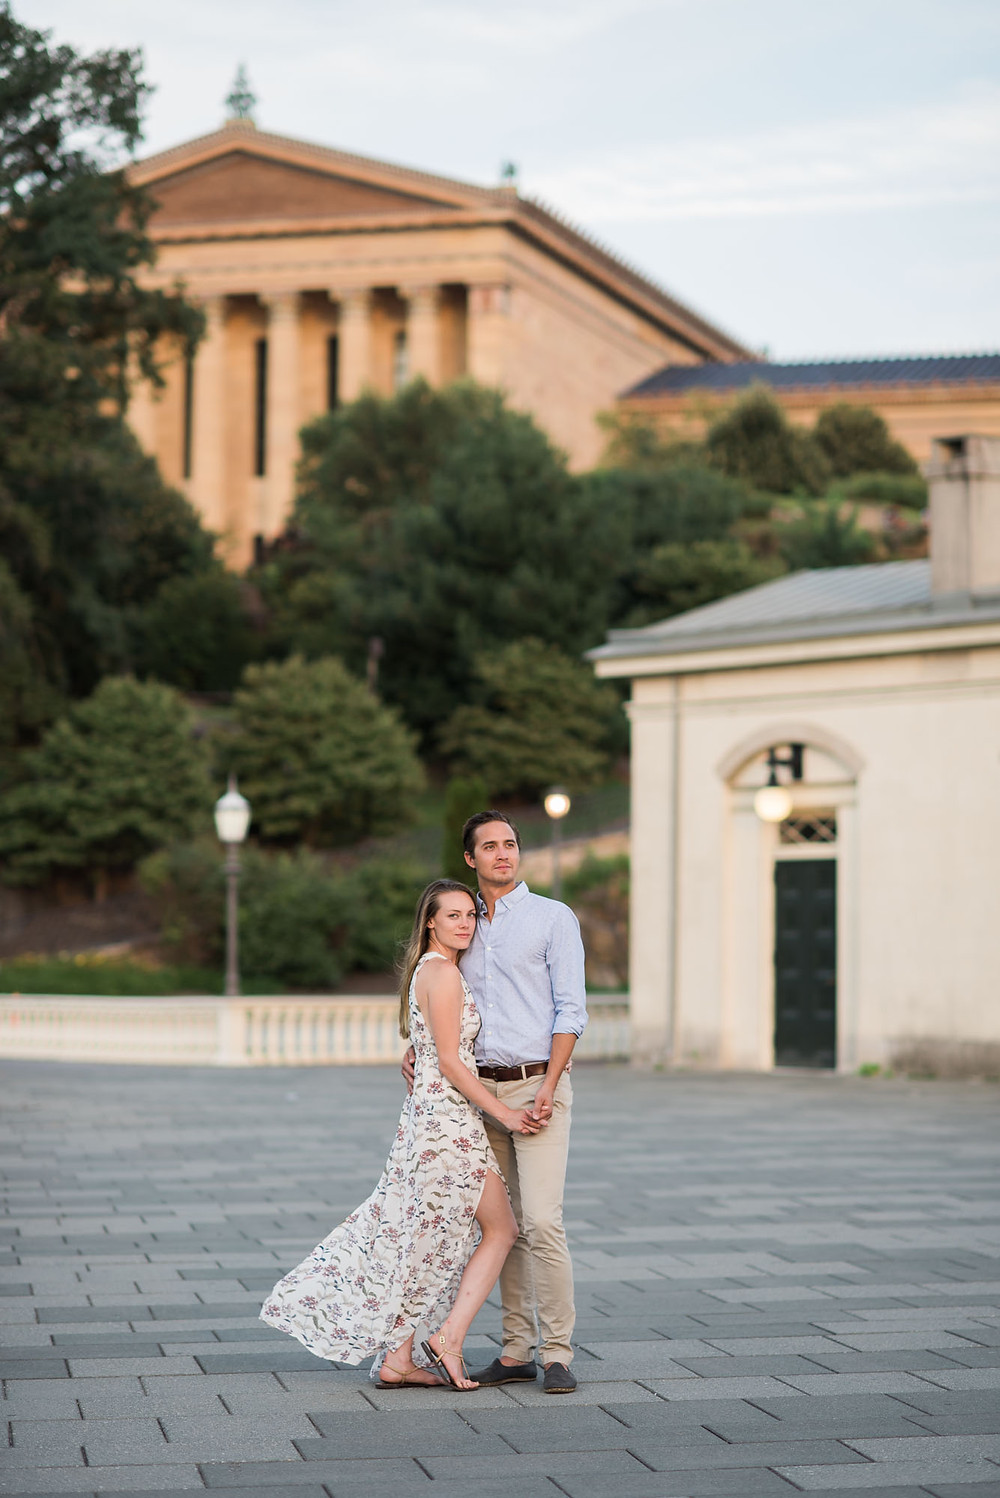 Floral Print Engagement Photo Dress with a Philly Couple